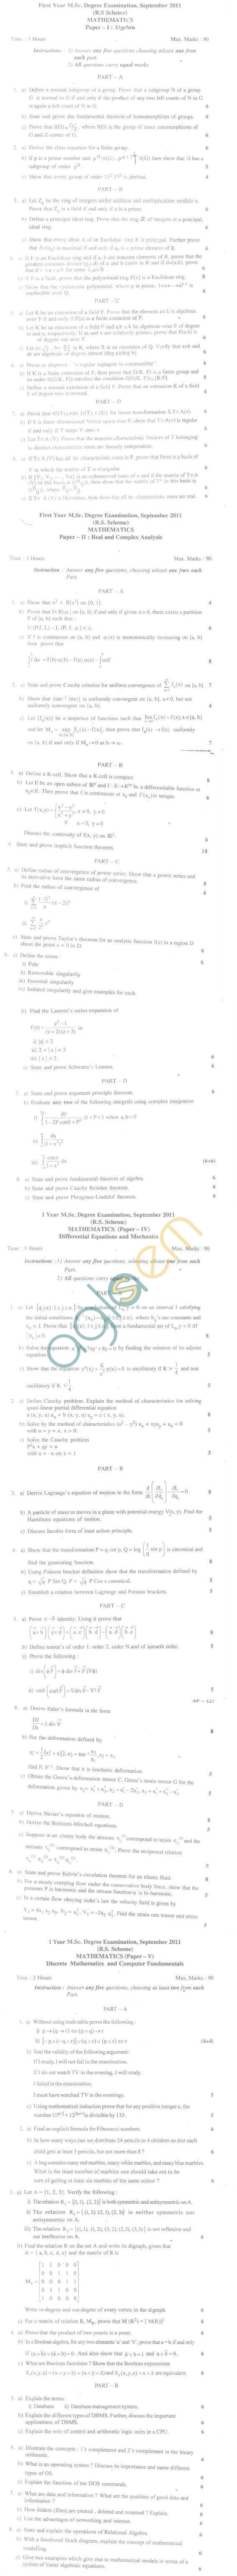 Bangalore University Question Paper September 2011 I Year M.Sc. Degree Examination - Mathematics